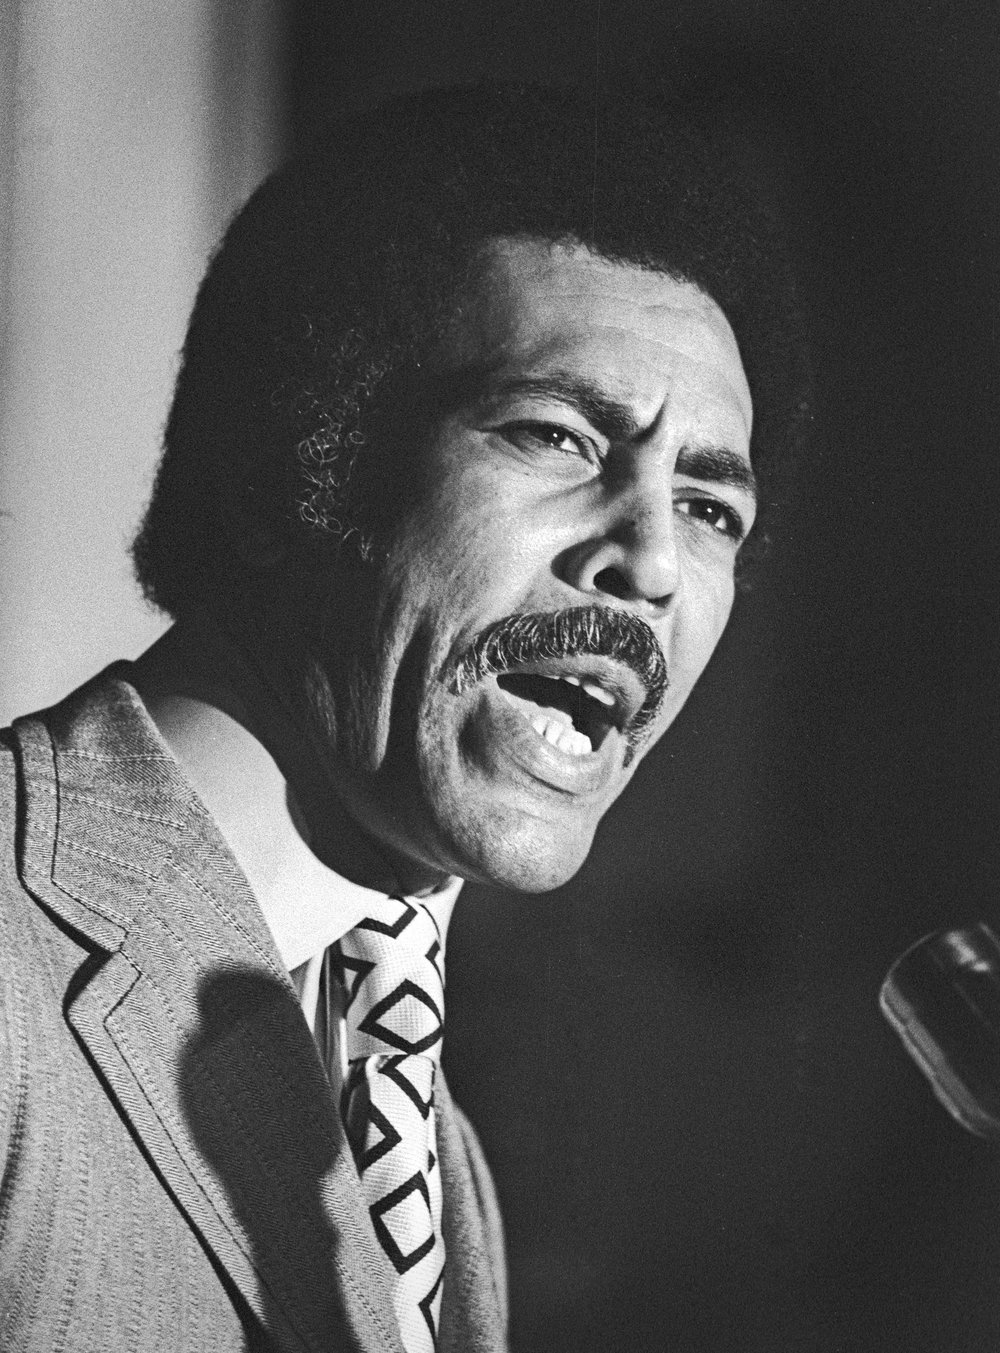 004_Ron_Dellums_2118-5_FX.jpg